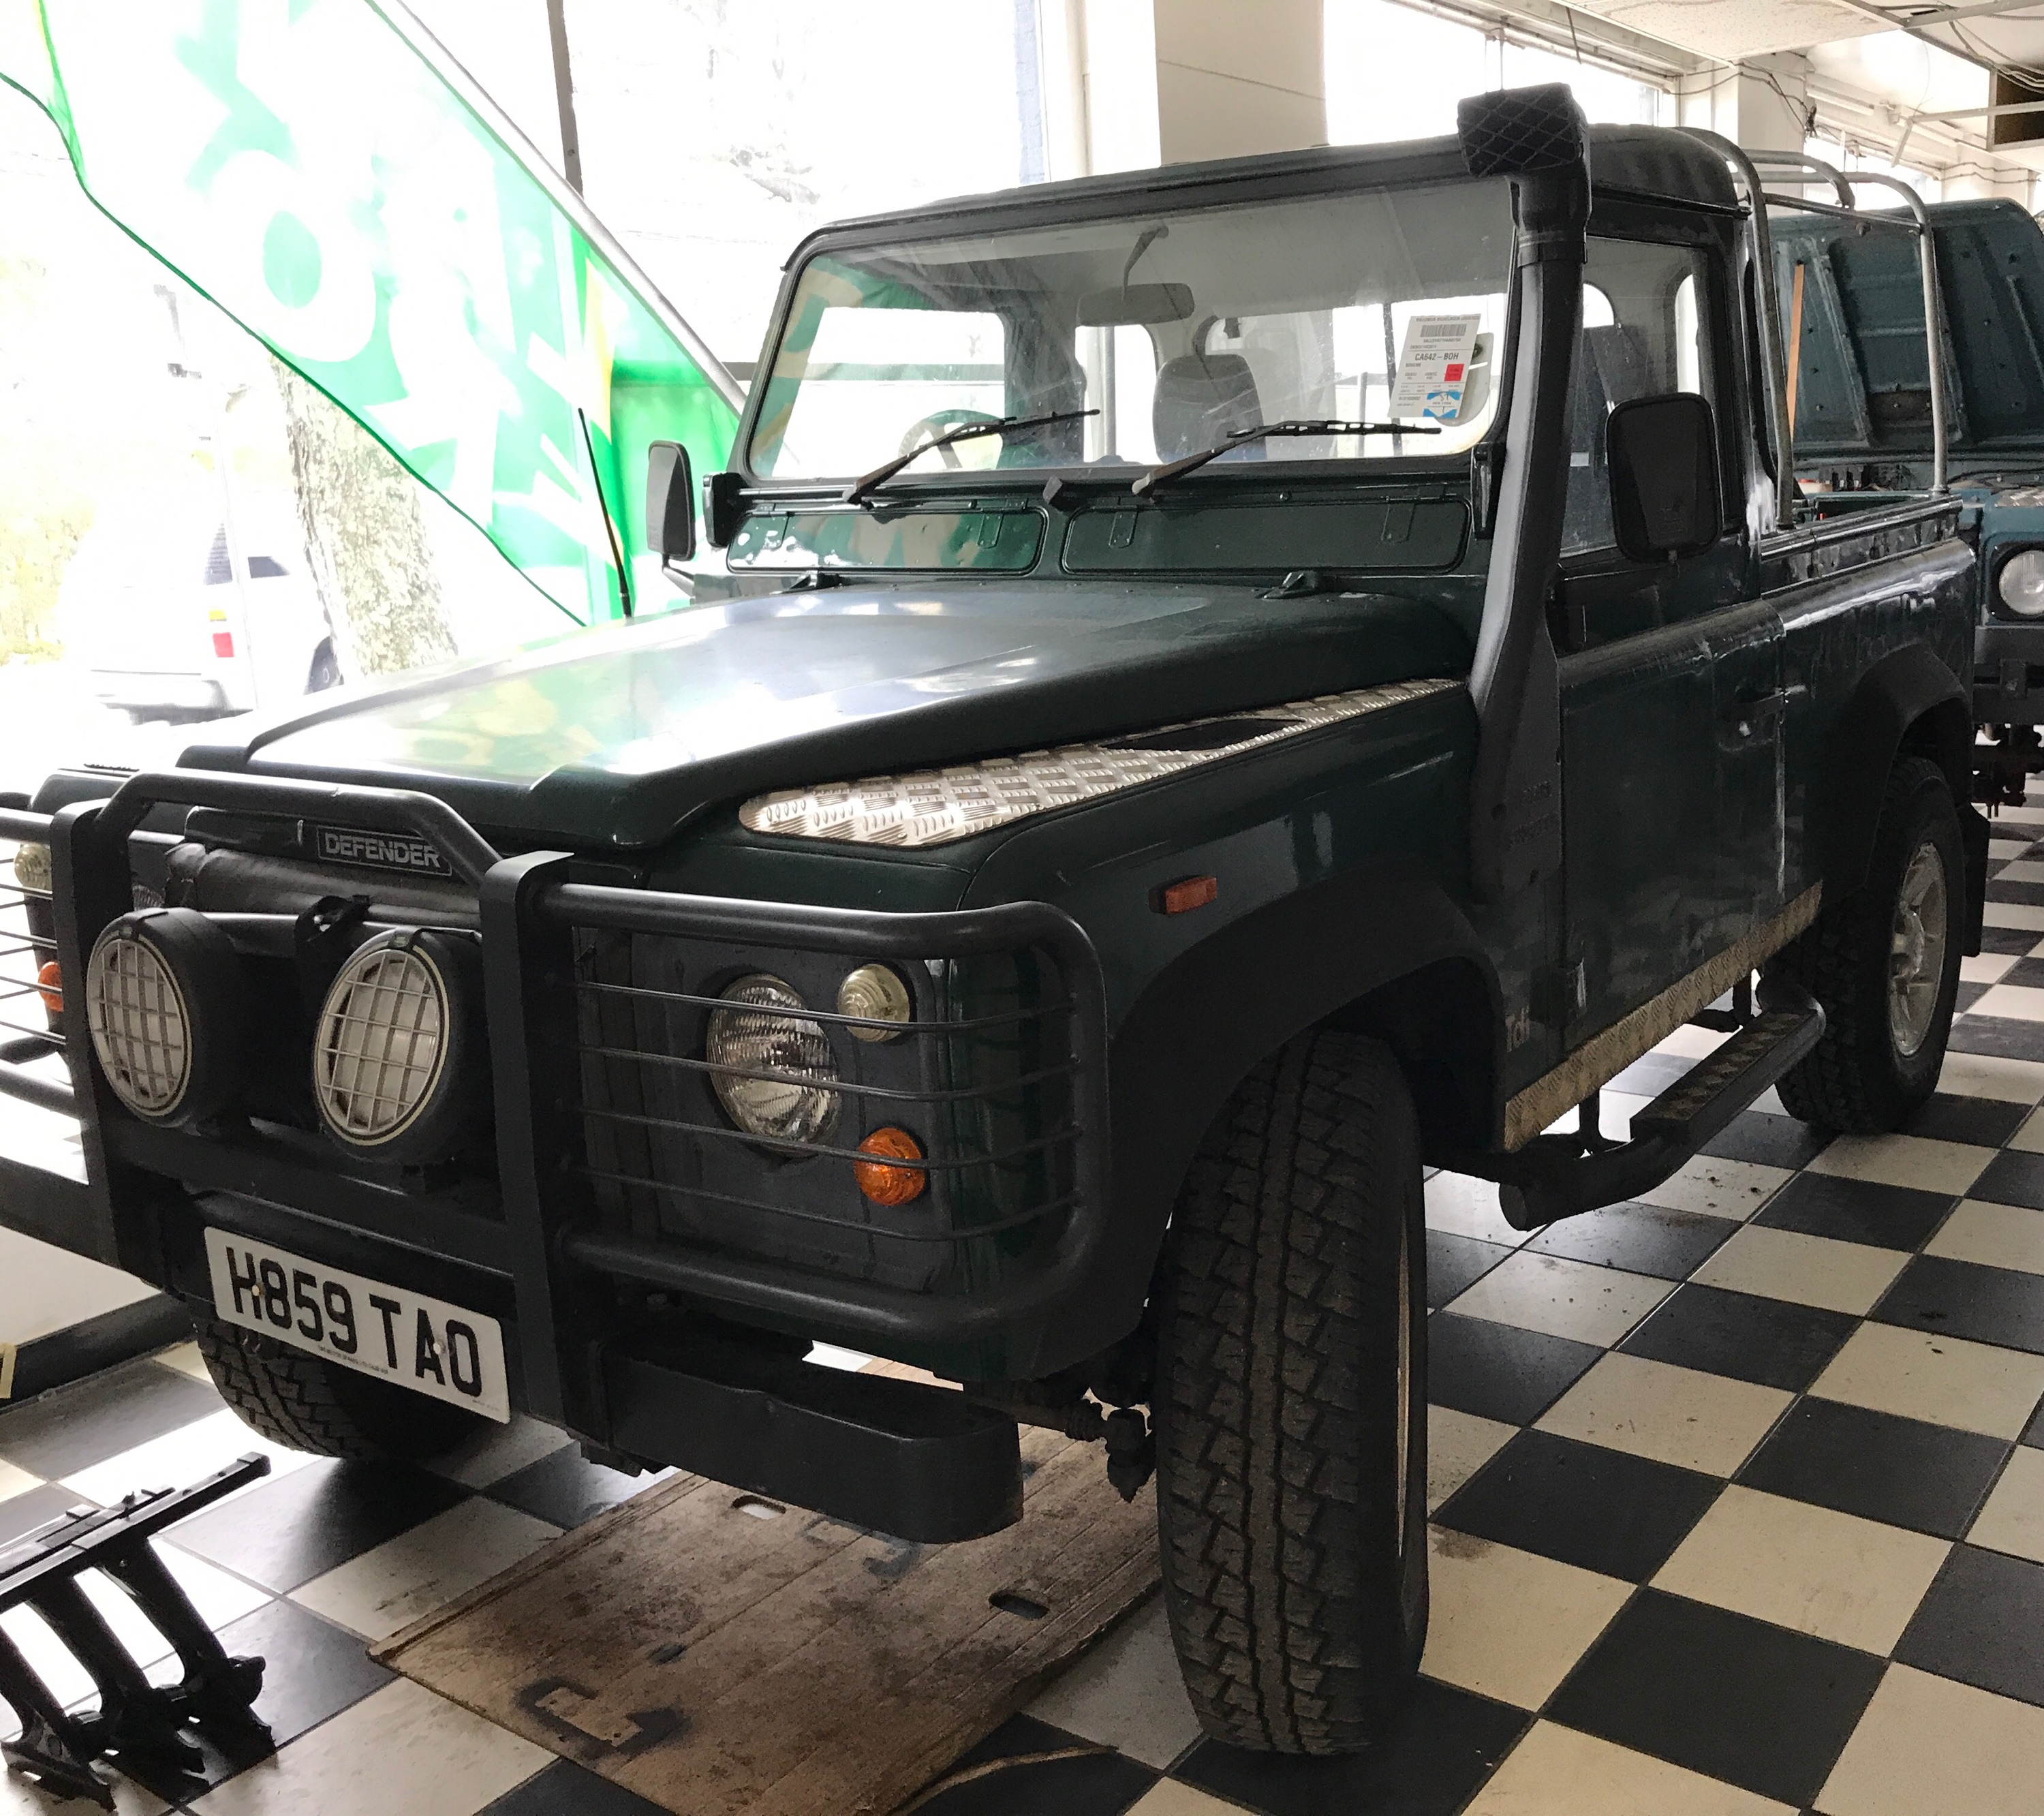 buy pin online parts landrover land webshop new defender rover or accessories now your